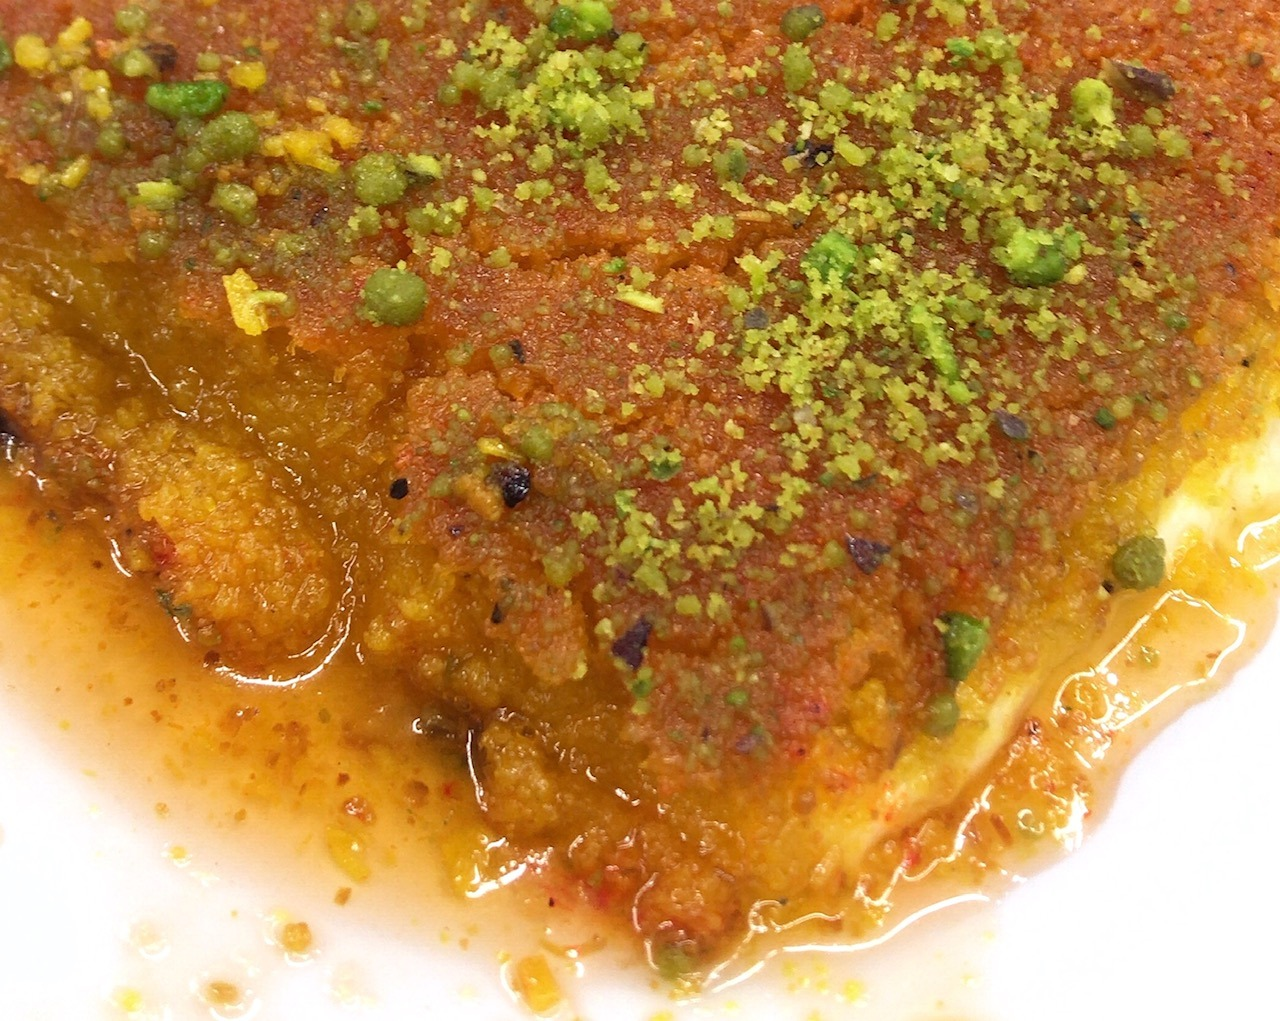 Knafeh at Jaffar Sweets